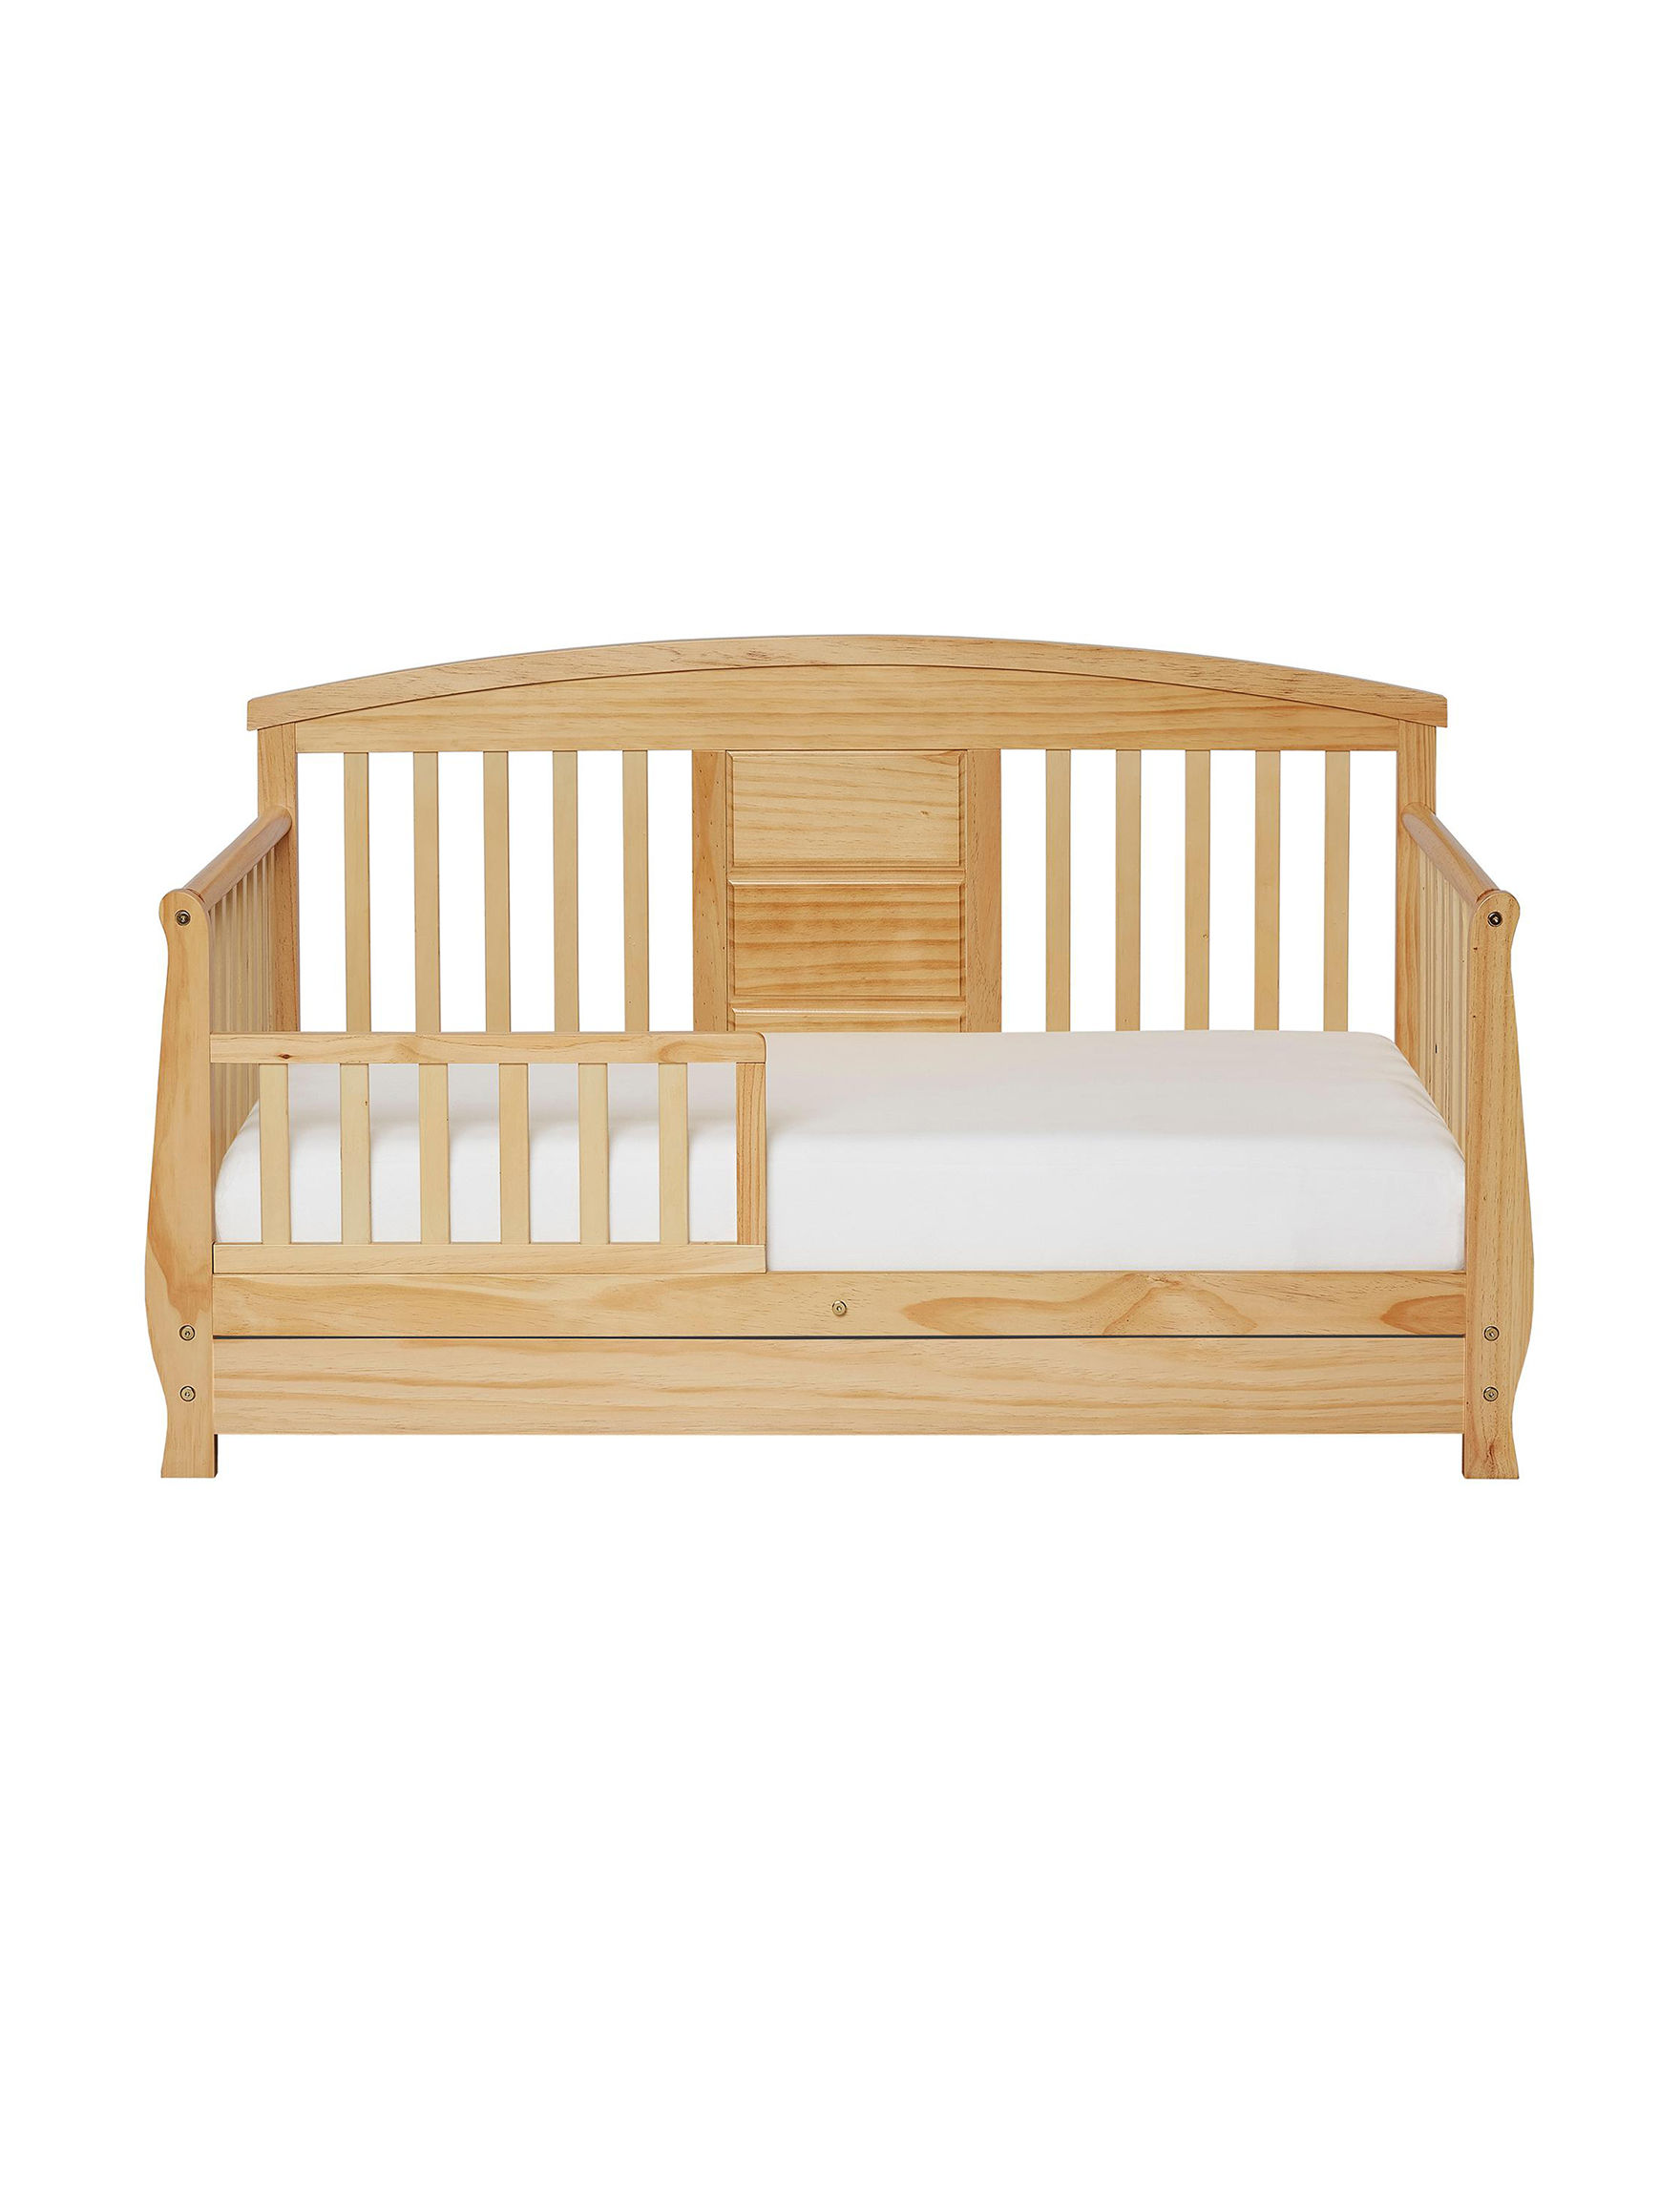 Dream On Me Natural Beds & Headboards Bedroom Furniture